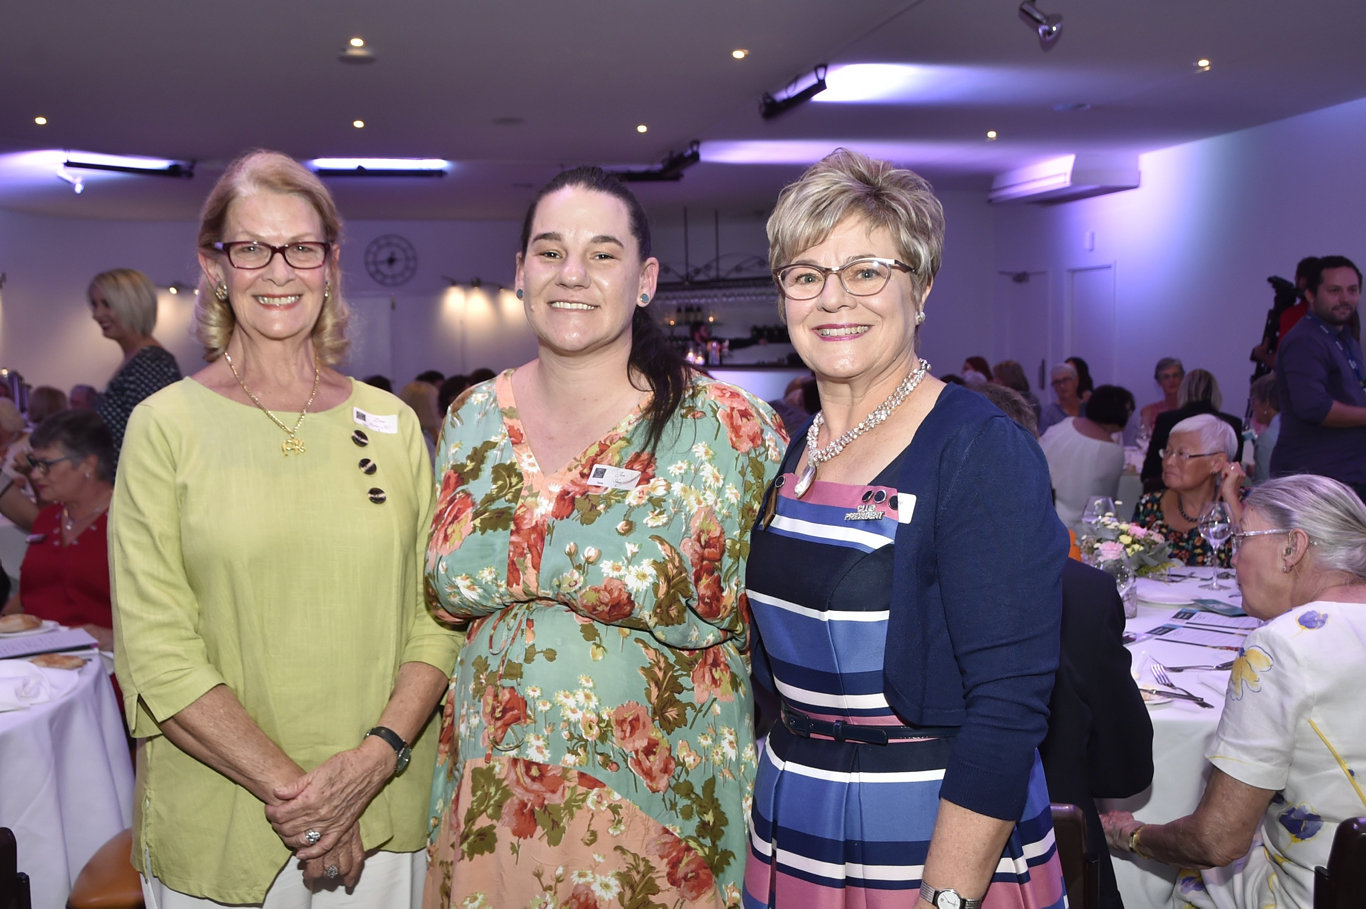 Guest speaker, Dina Browne (left) with the Zonta woman of the year, Jen Shaw, and president of the Zonta Club of Toowoomba, Kathryn Galea. International women's day Zonta lunch at Toowoomba Golf Club. March 2019